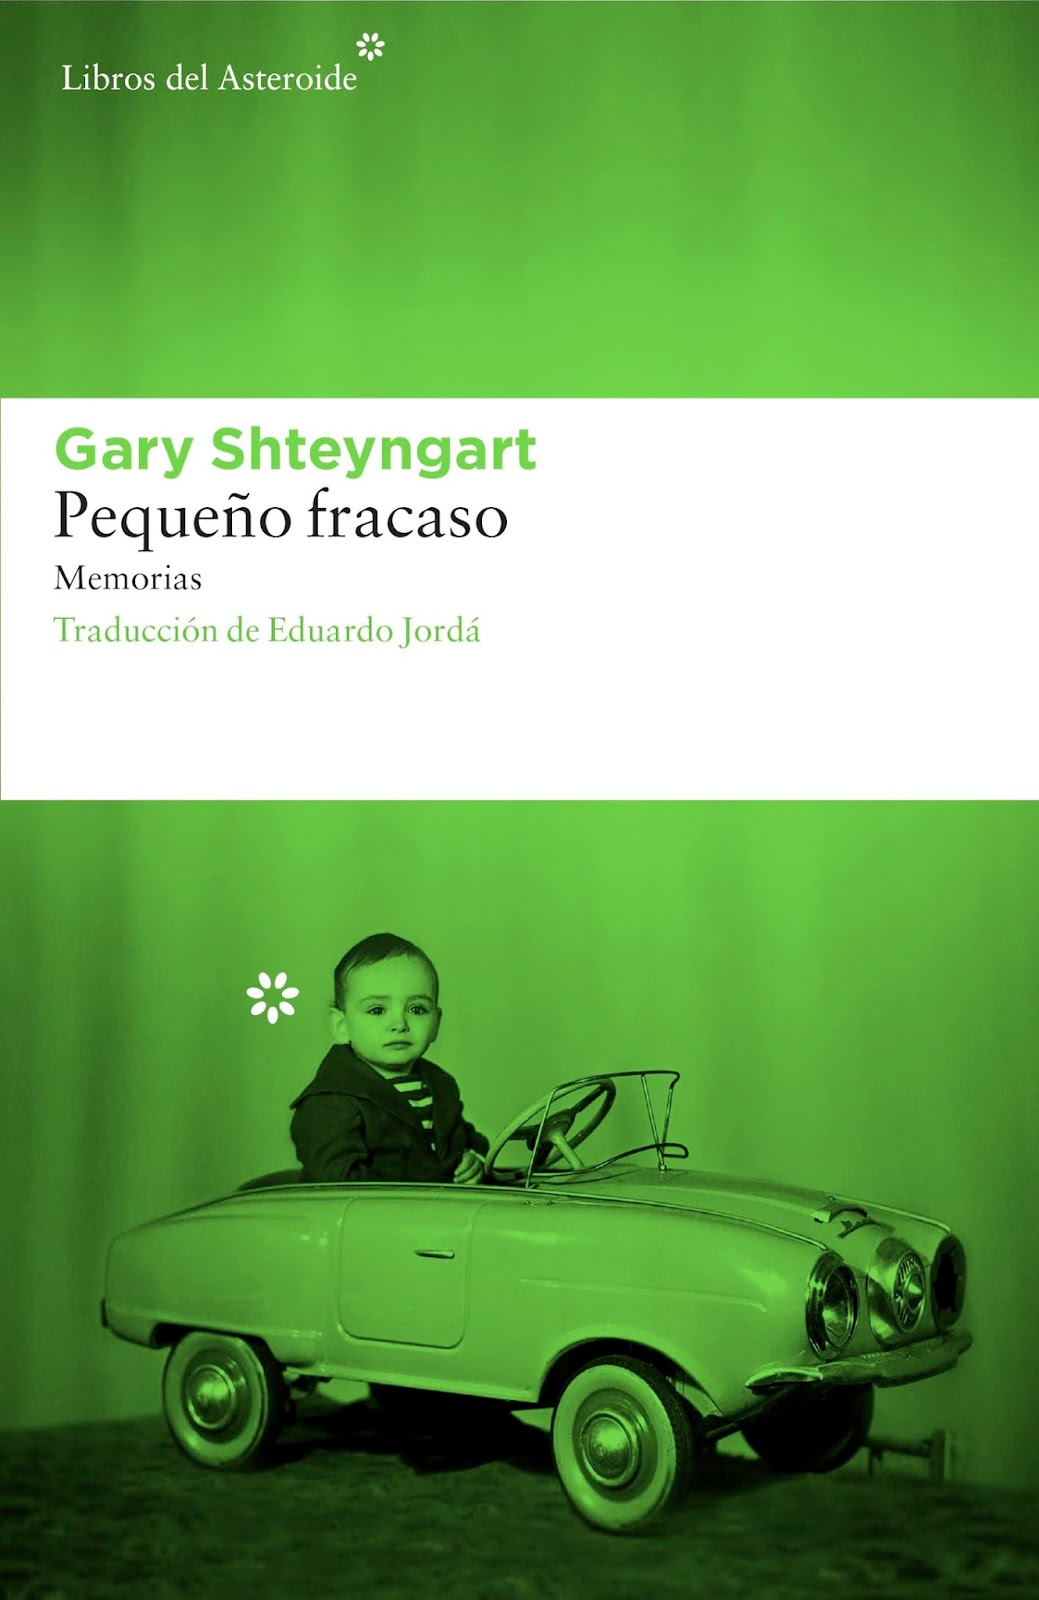 """sixty nine cents by gary shteyngart essay Sixty nine cents the new yorker i shteyngart's first story, """"sixty-nine cents"""", which shteyngart introduced readings: examples of essays - 2012 book archive gary shteyngart came to the united states when he was seven years old."""